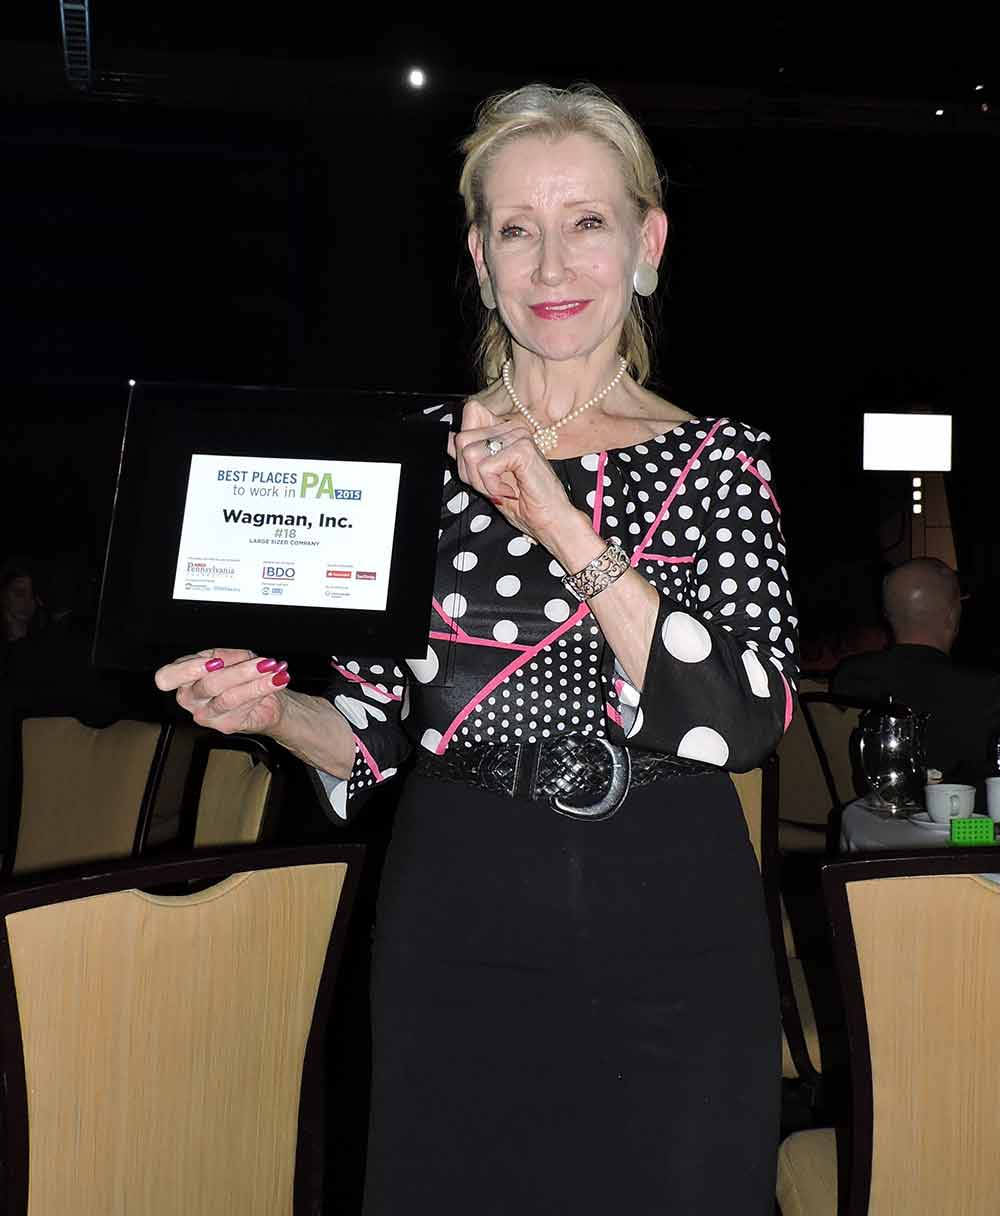 Sherry R accepts Wagman award for 2015 Best Places to Work